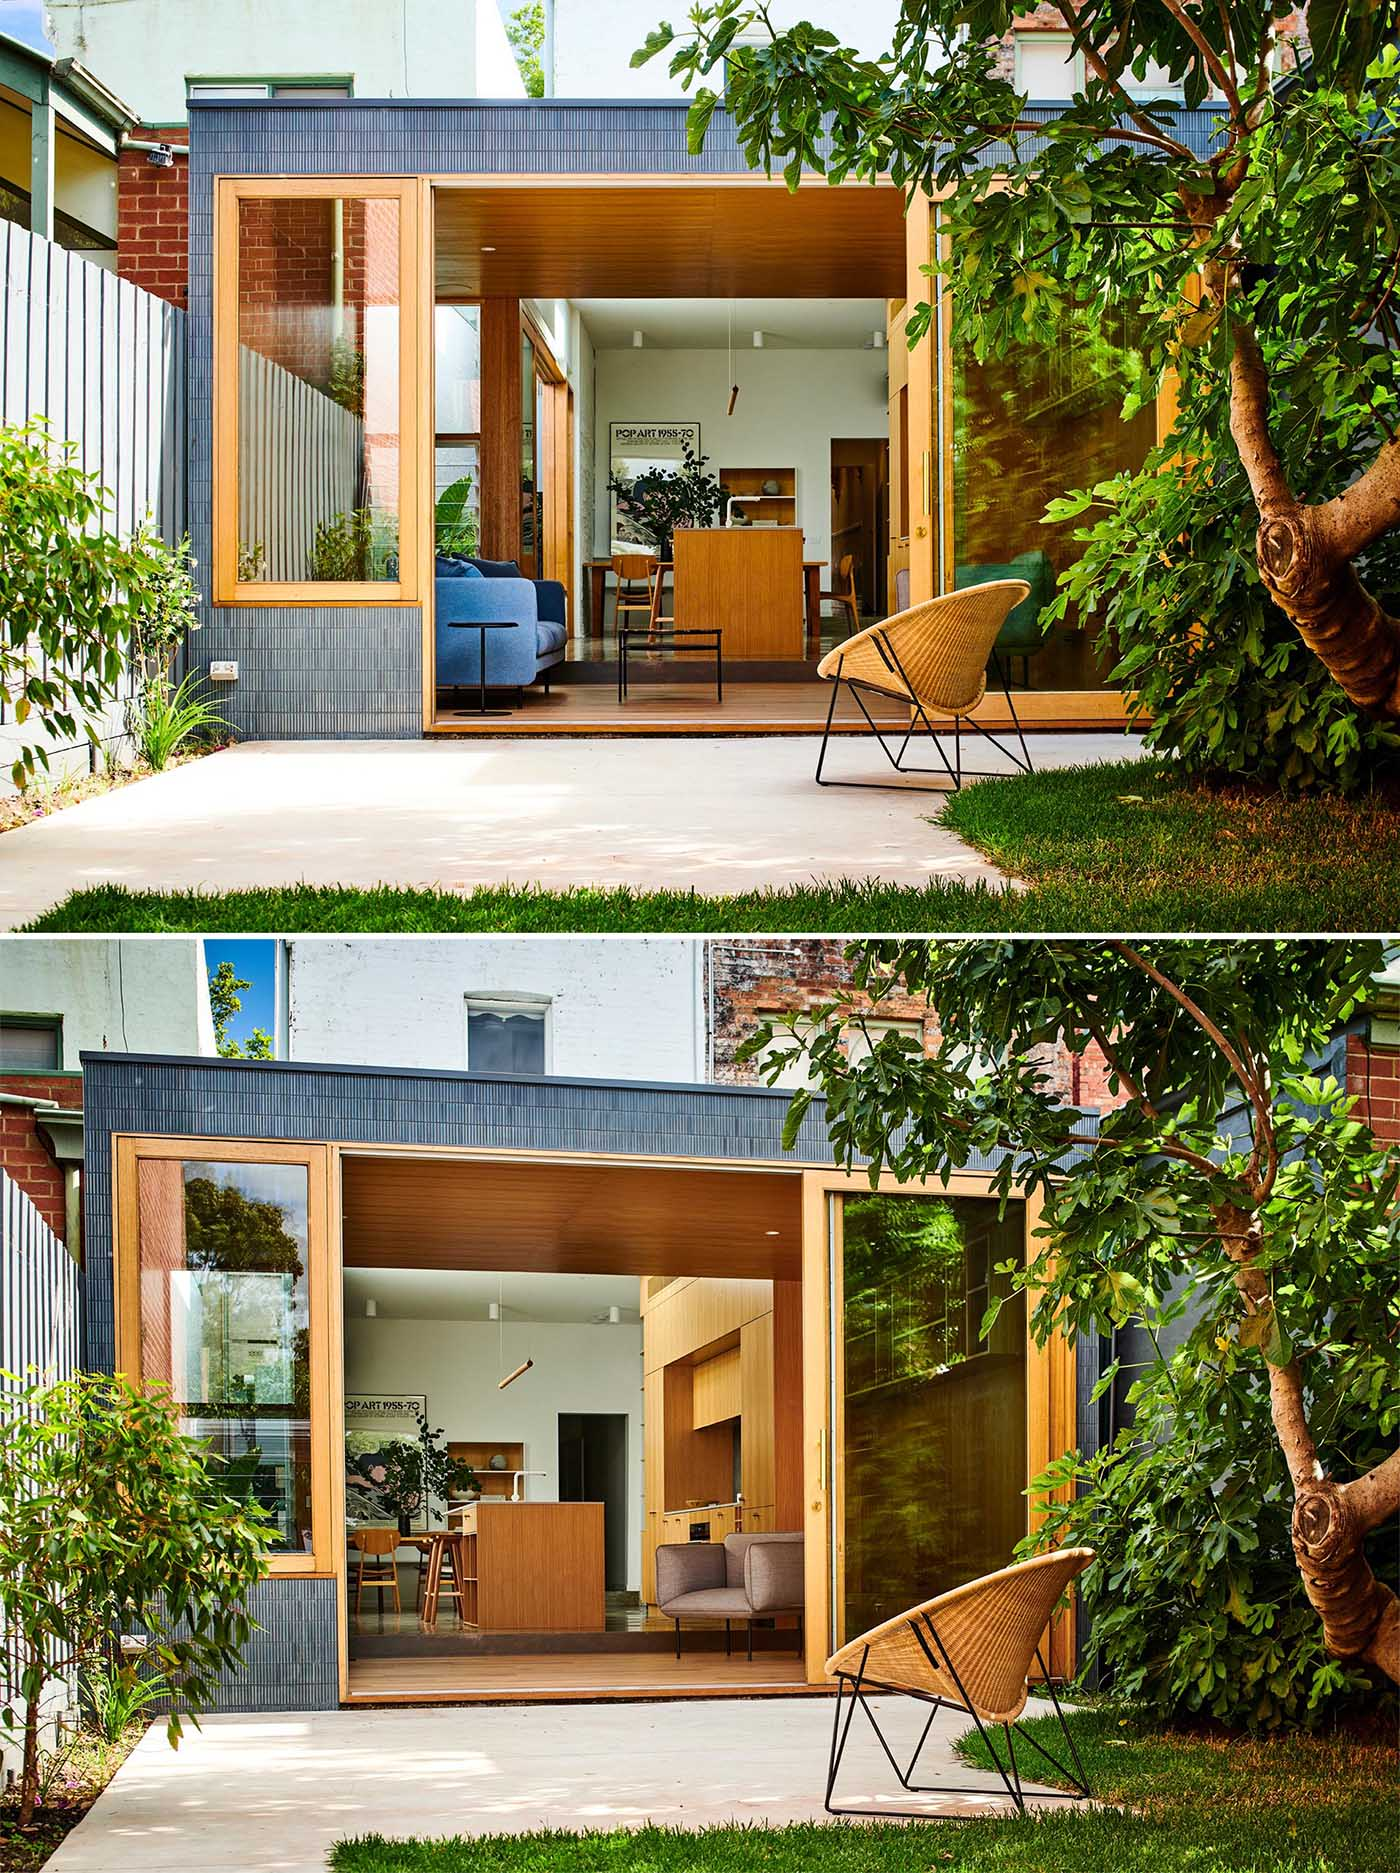 Dan Gayfer Design has completed a new ground floor addition for a home in Melbourne, Australia, that includes a new sitting area, the kitchen, and dining area.